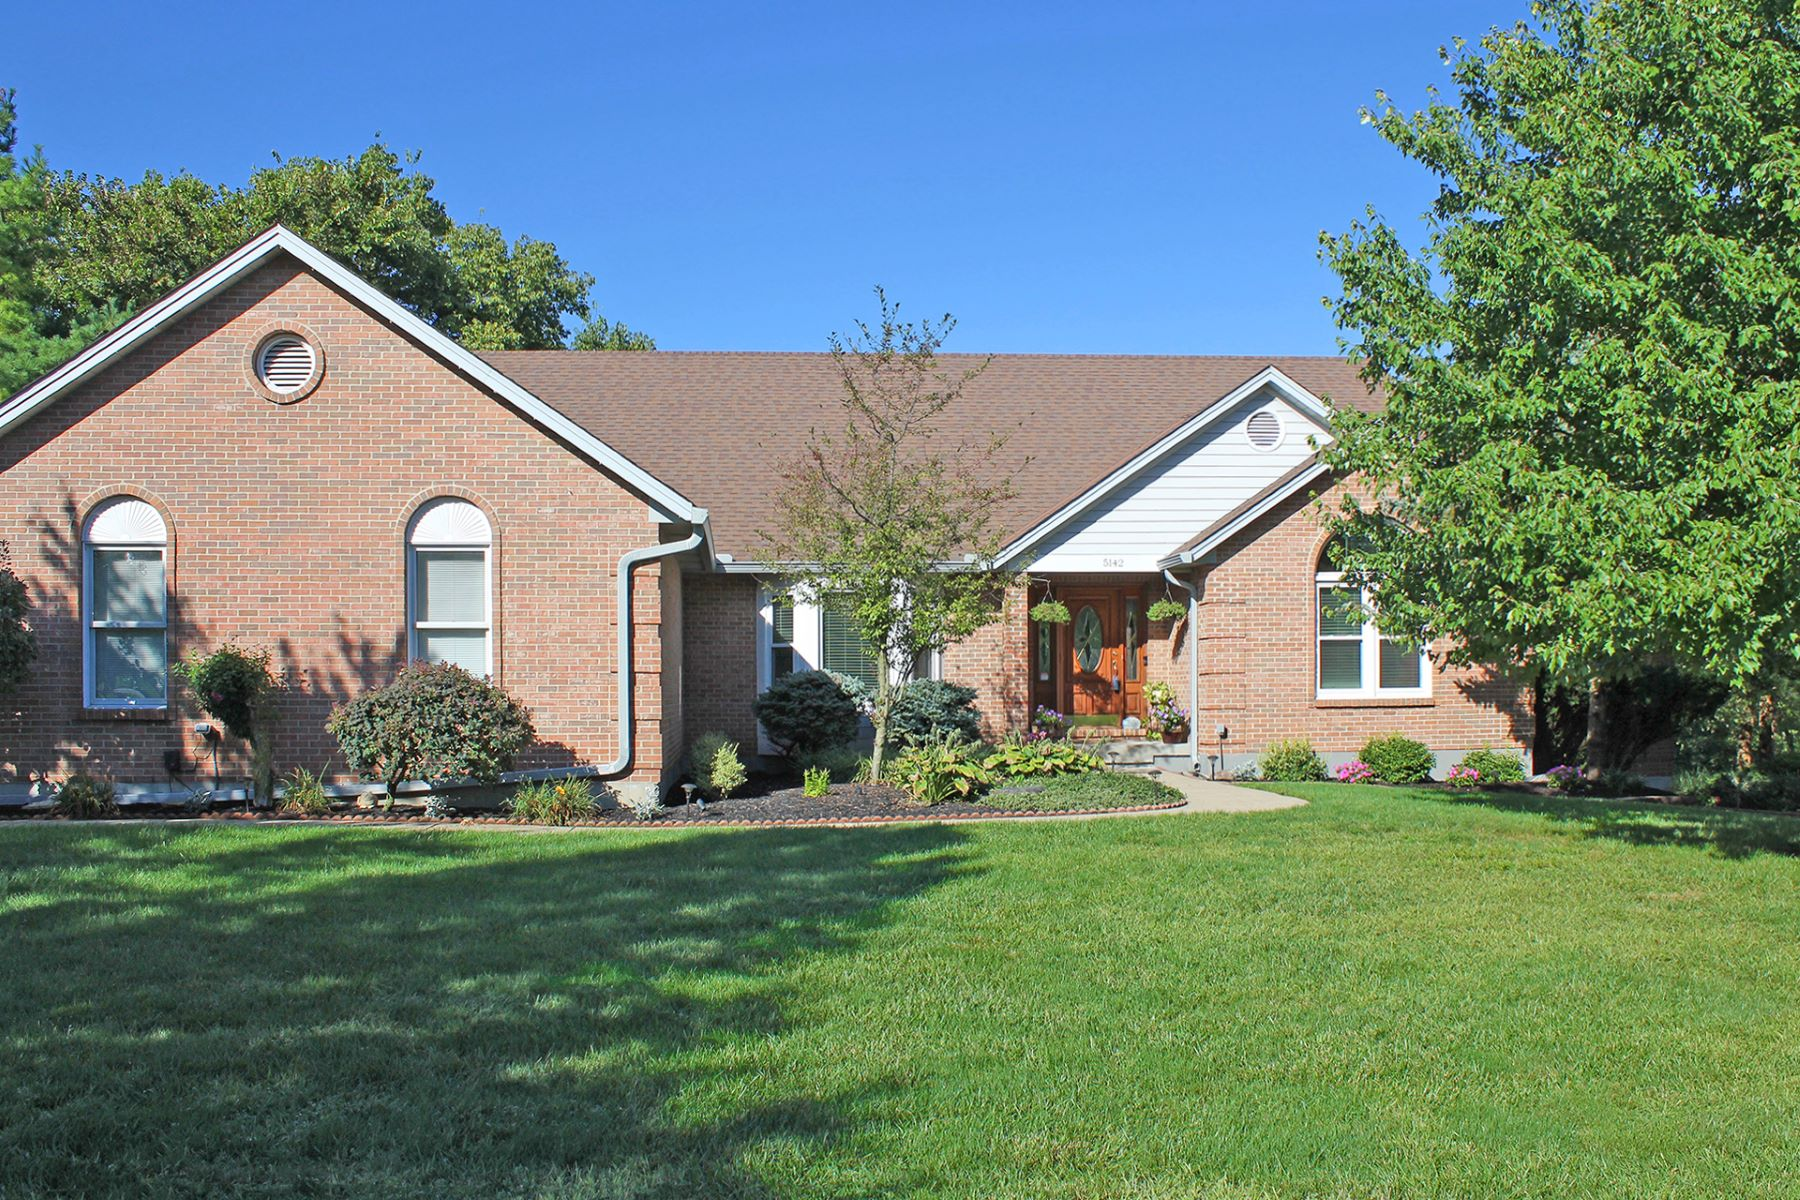 Single Family Homes for Sale at Easy one level living 5142 Providence Ridge Drive Liberty Township, Ohio 45011 United States